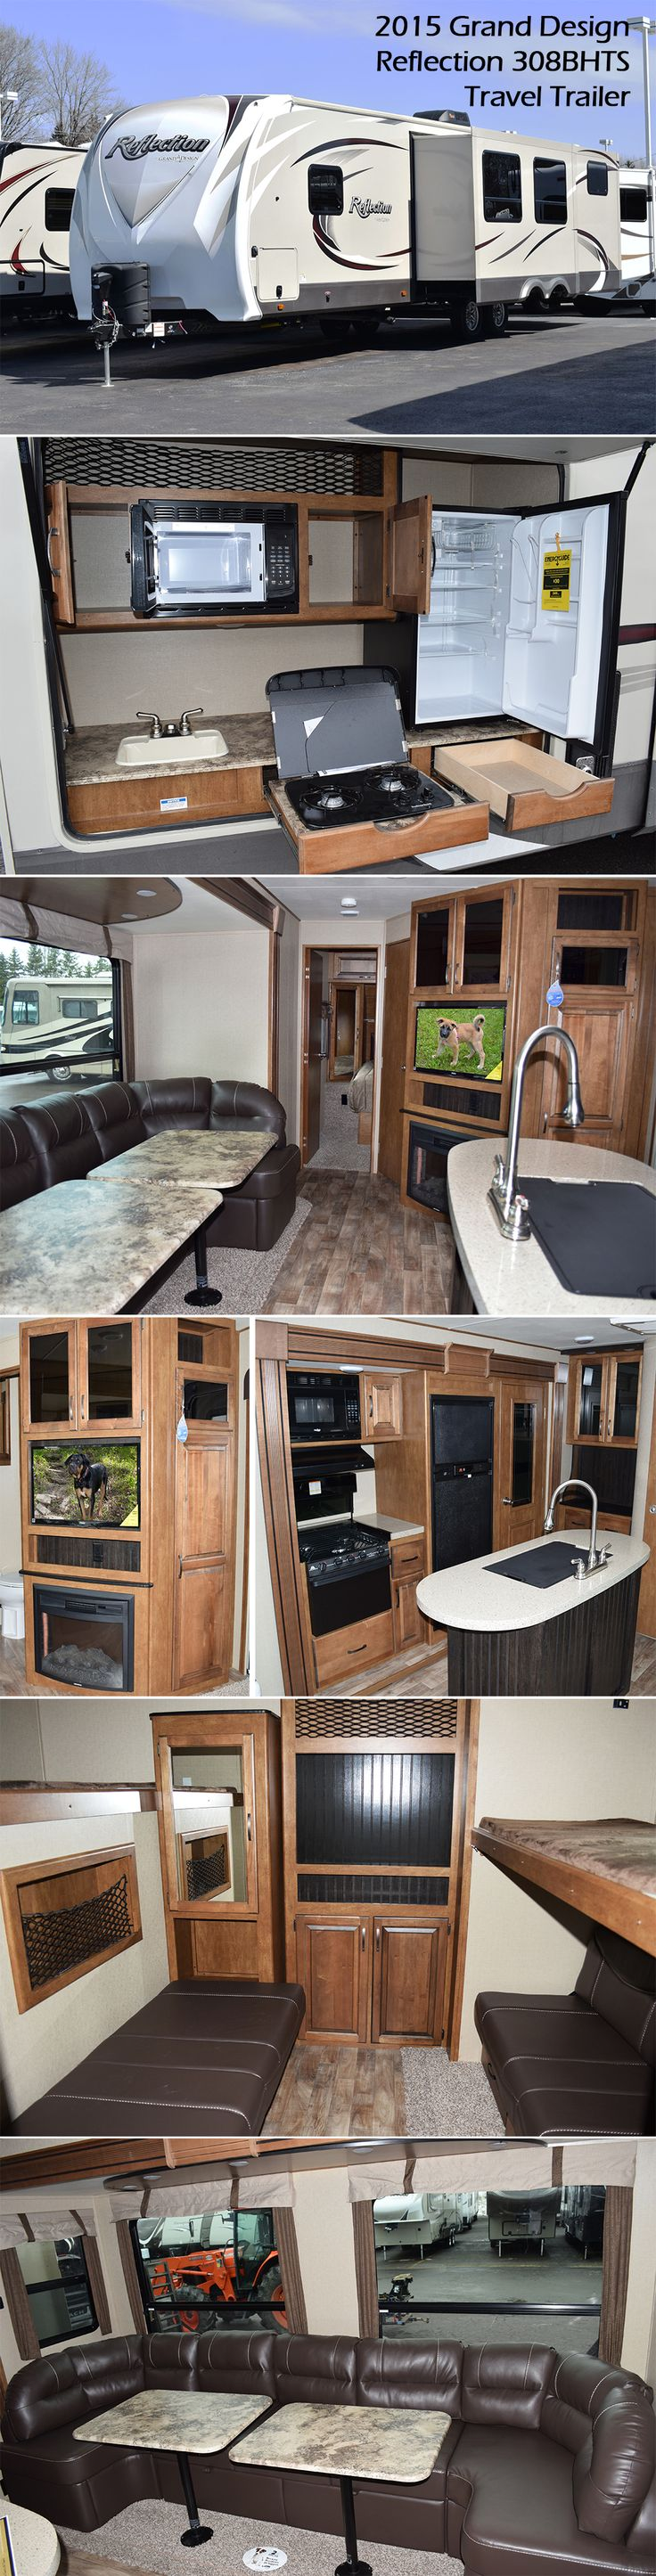 308bhts travel trailer by grand design a celebration of luxury